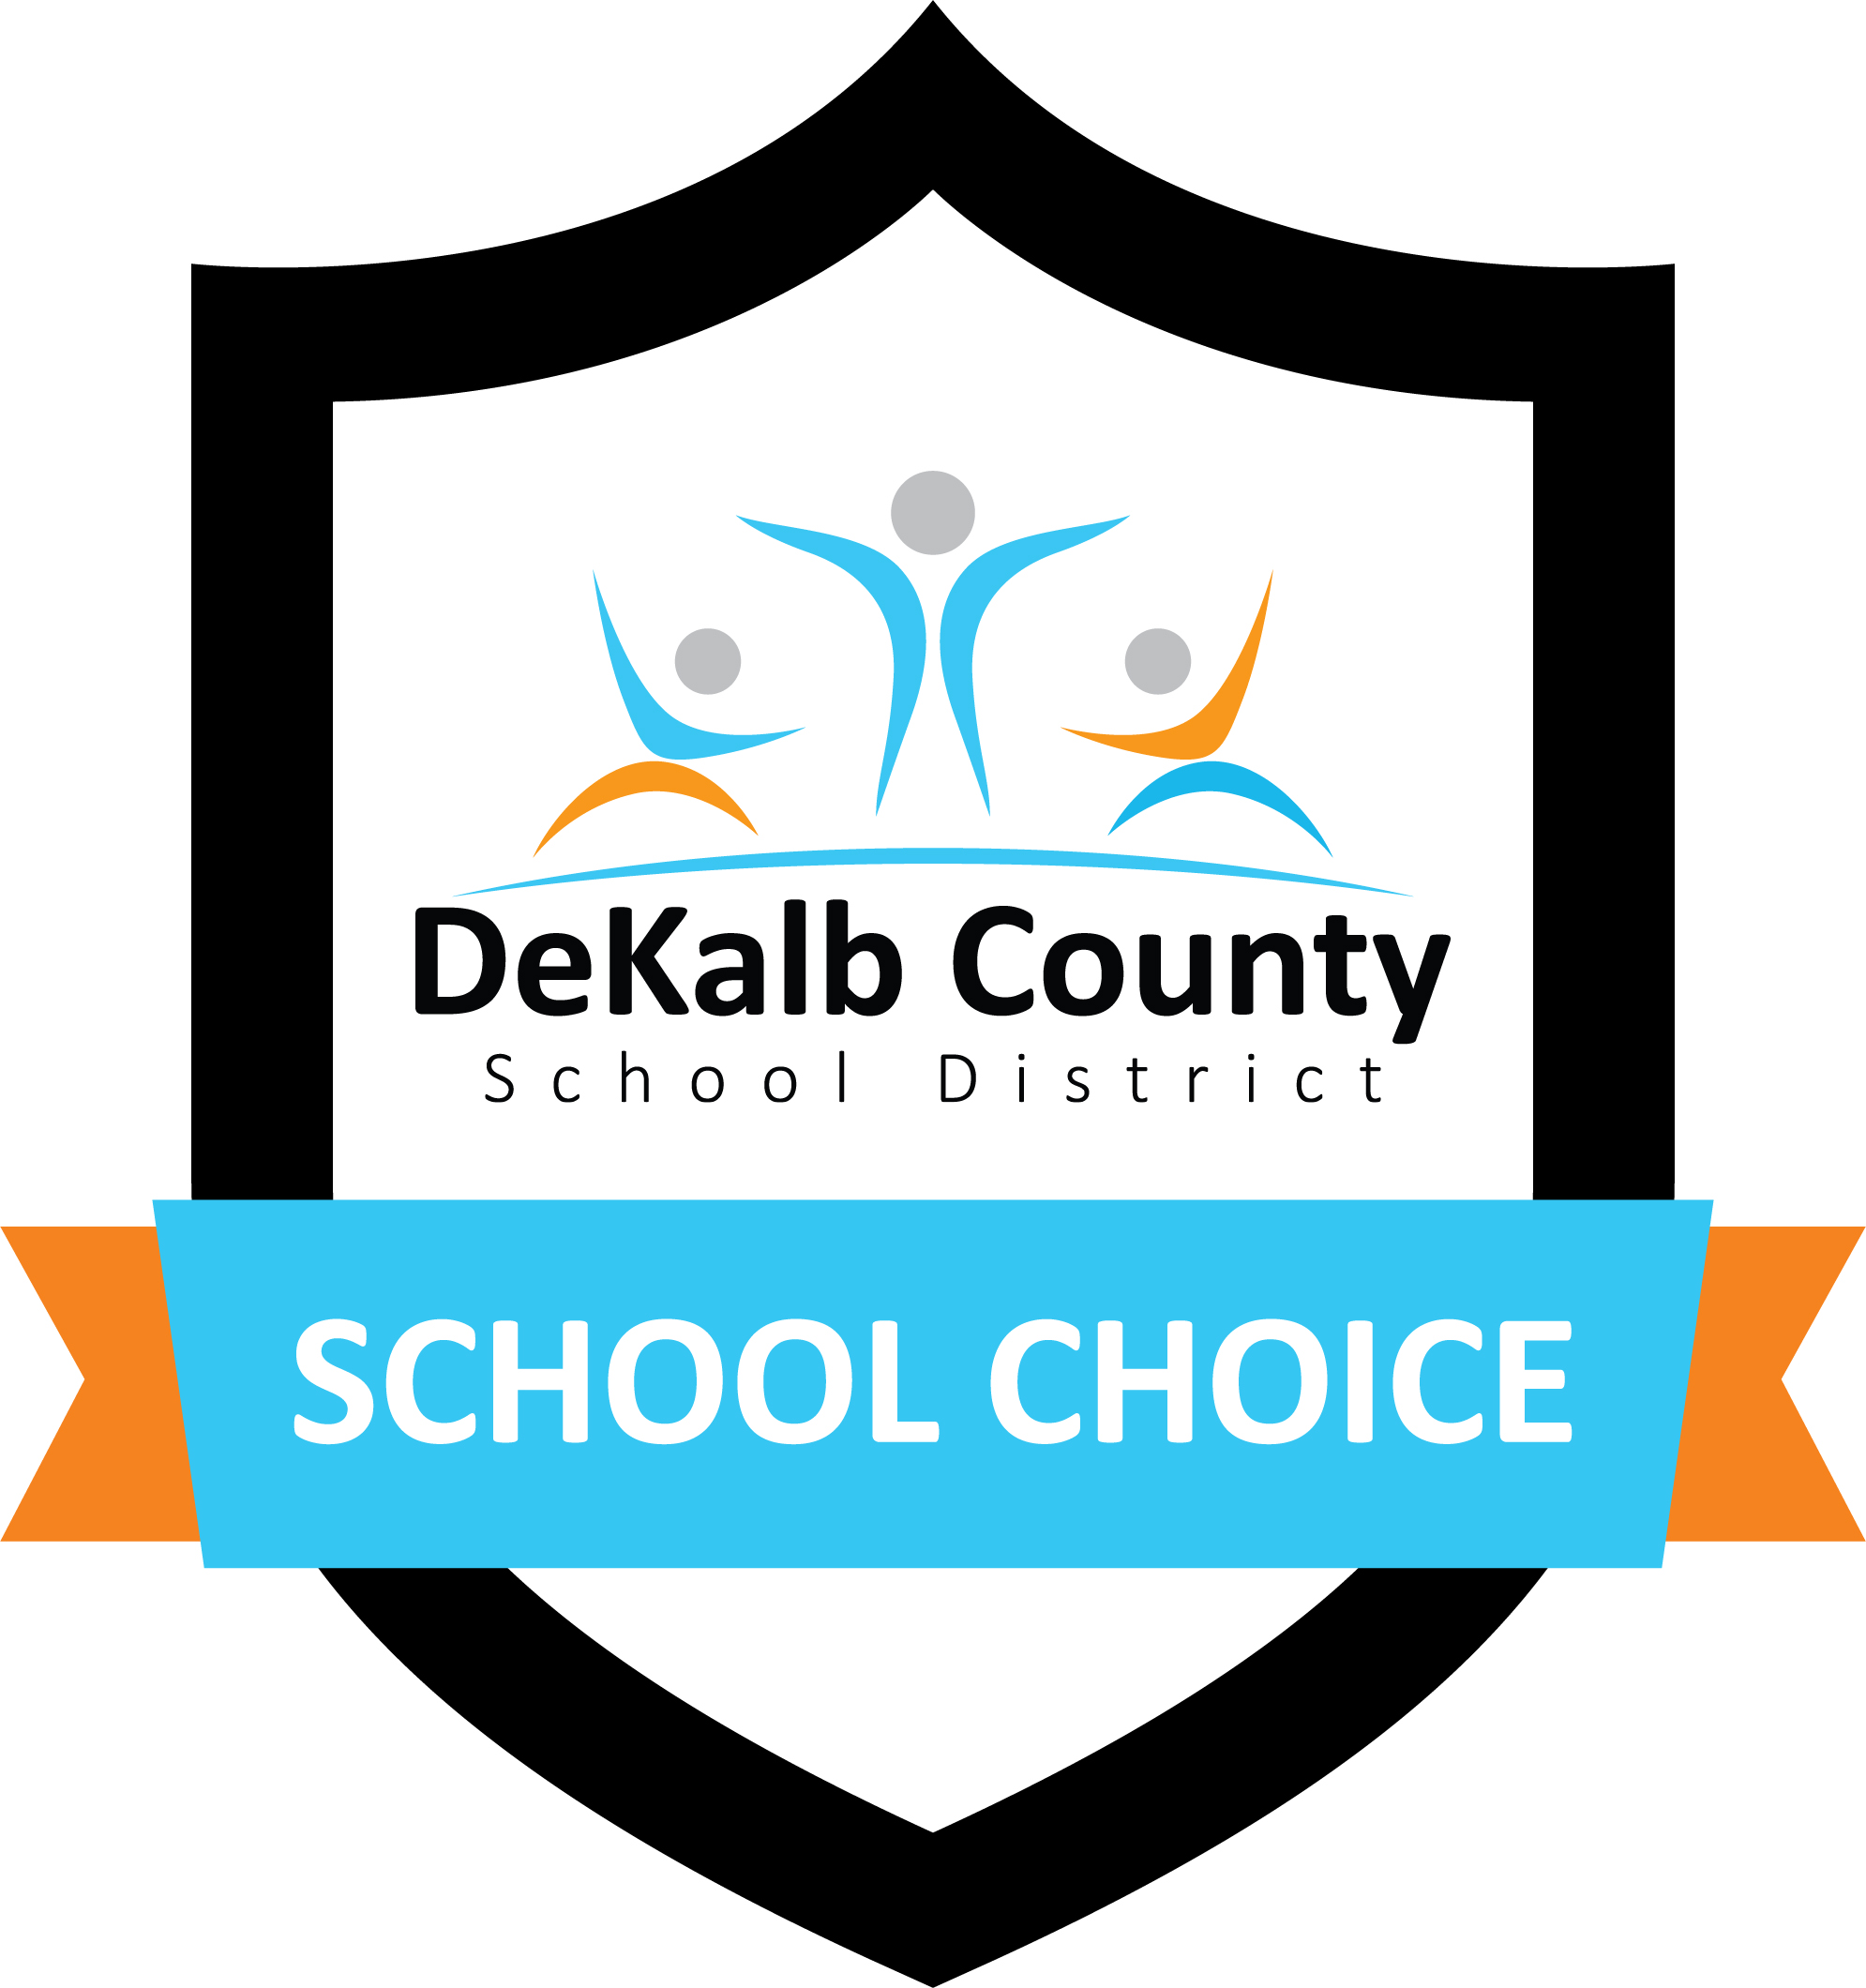 Decatur County School District Auto Electrical Wiring Diagram Yale Gc030 Upcoming Choice Town Hall Meetings U2013 Dekalb